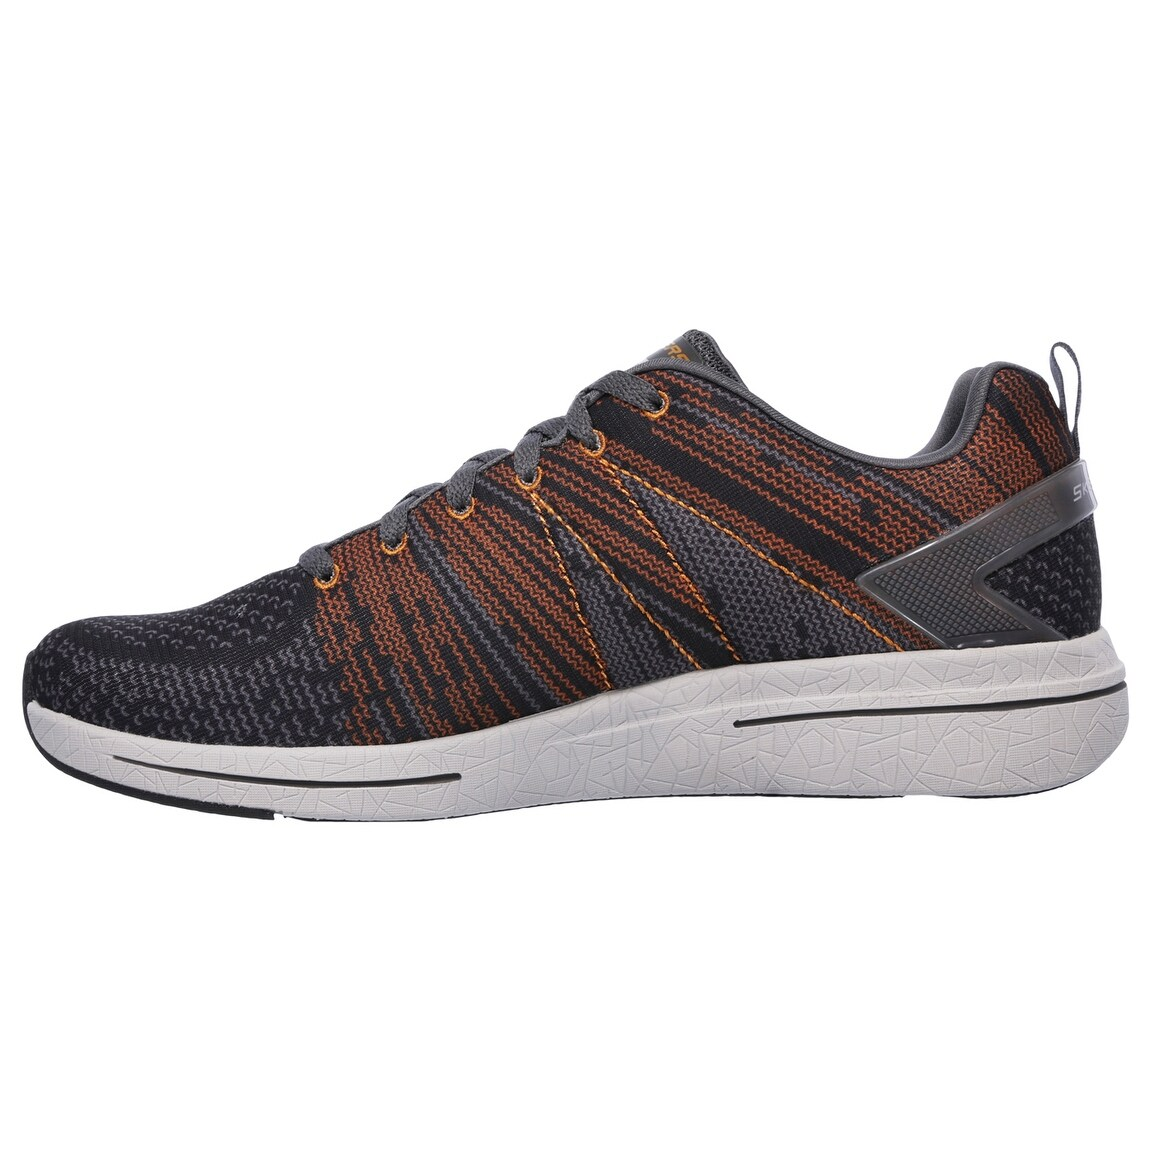 Skechers 52615 CCOR Men's BURST 2.0 IN THE MIX II Walking